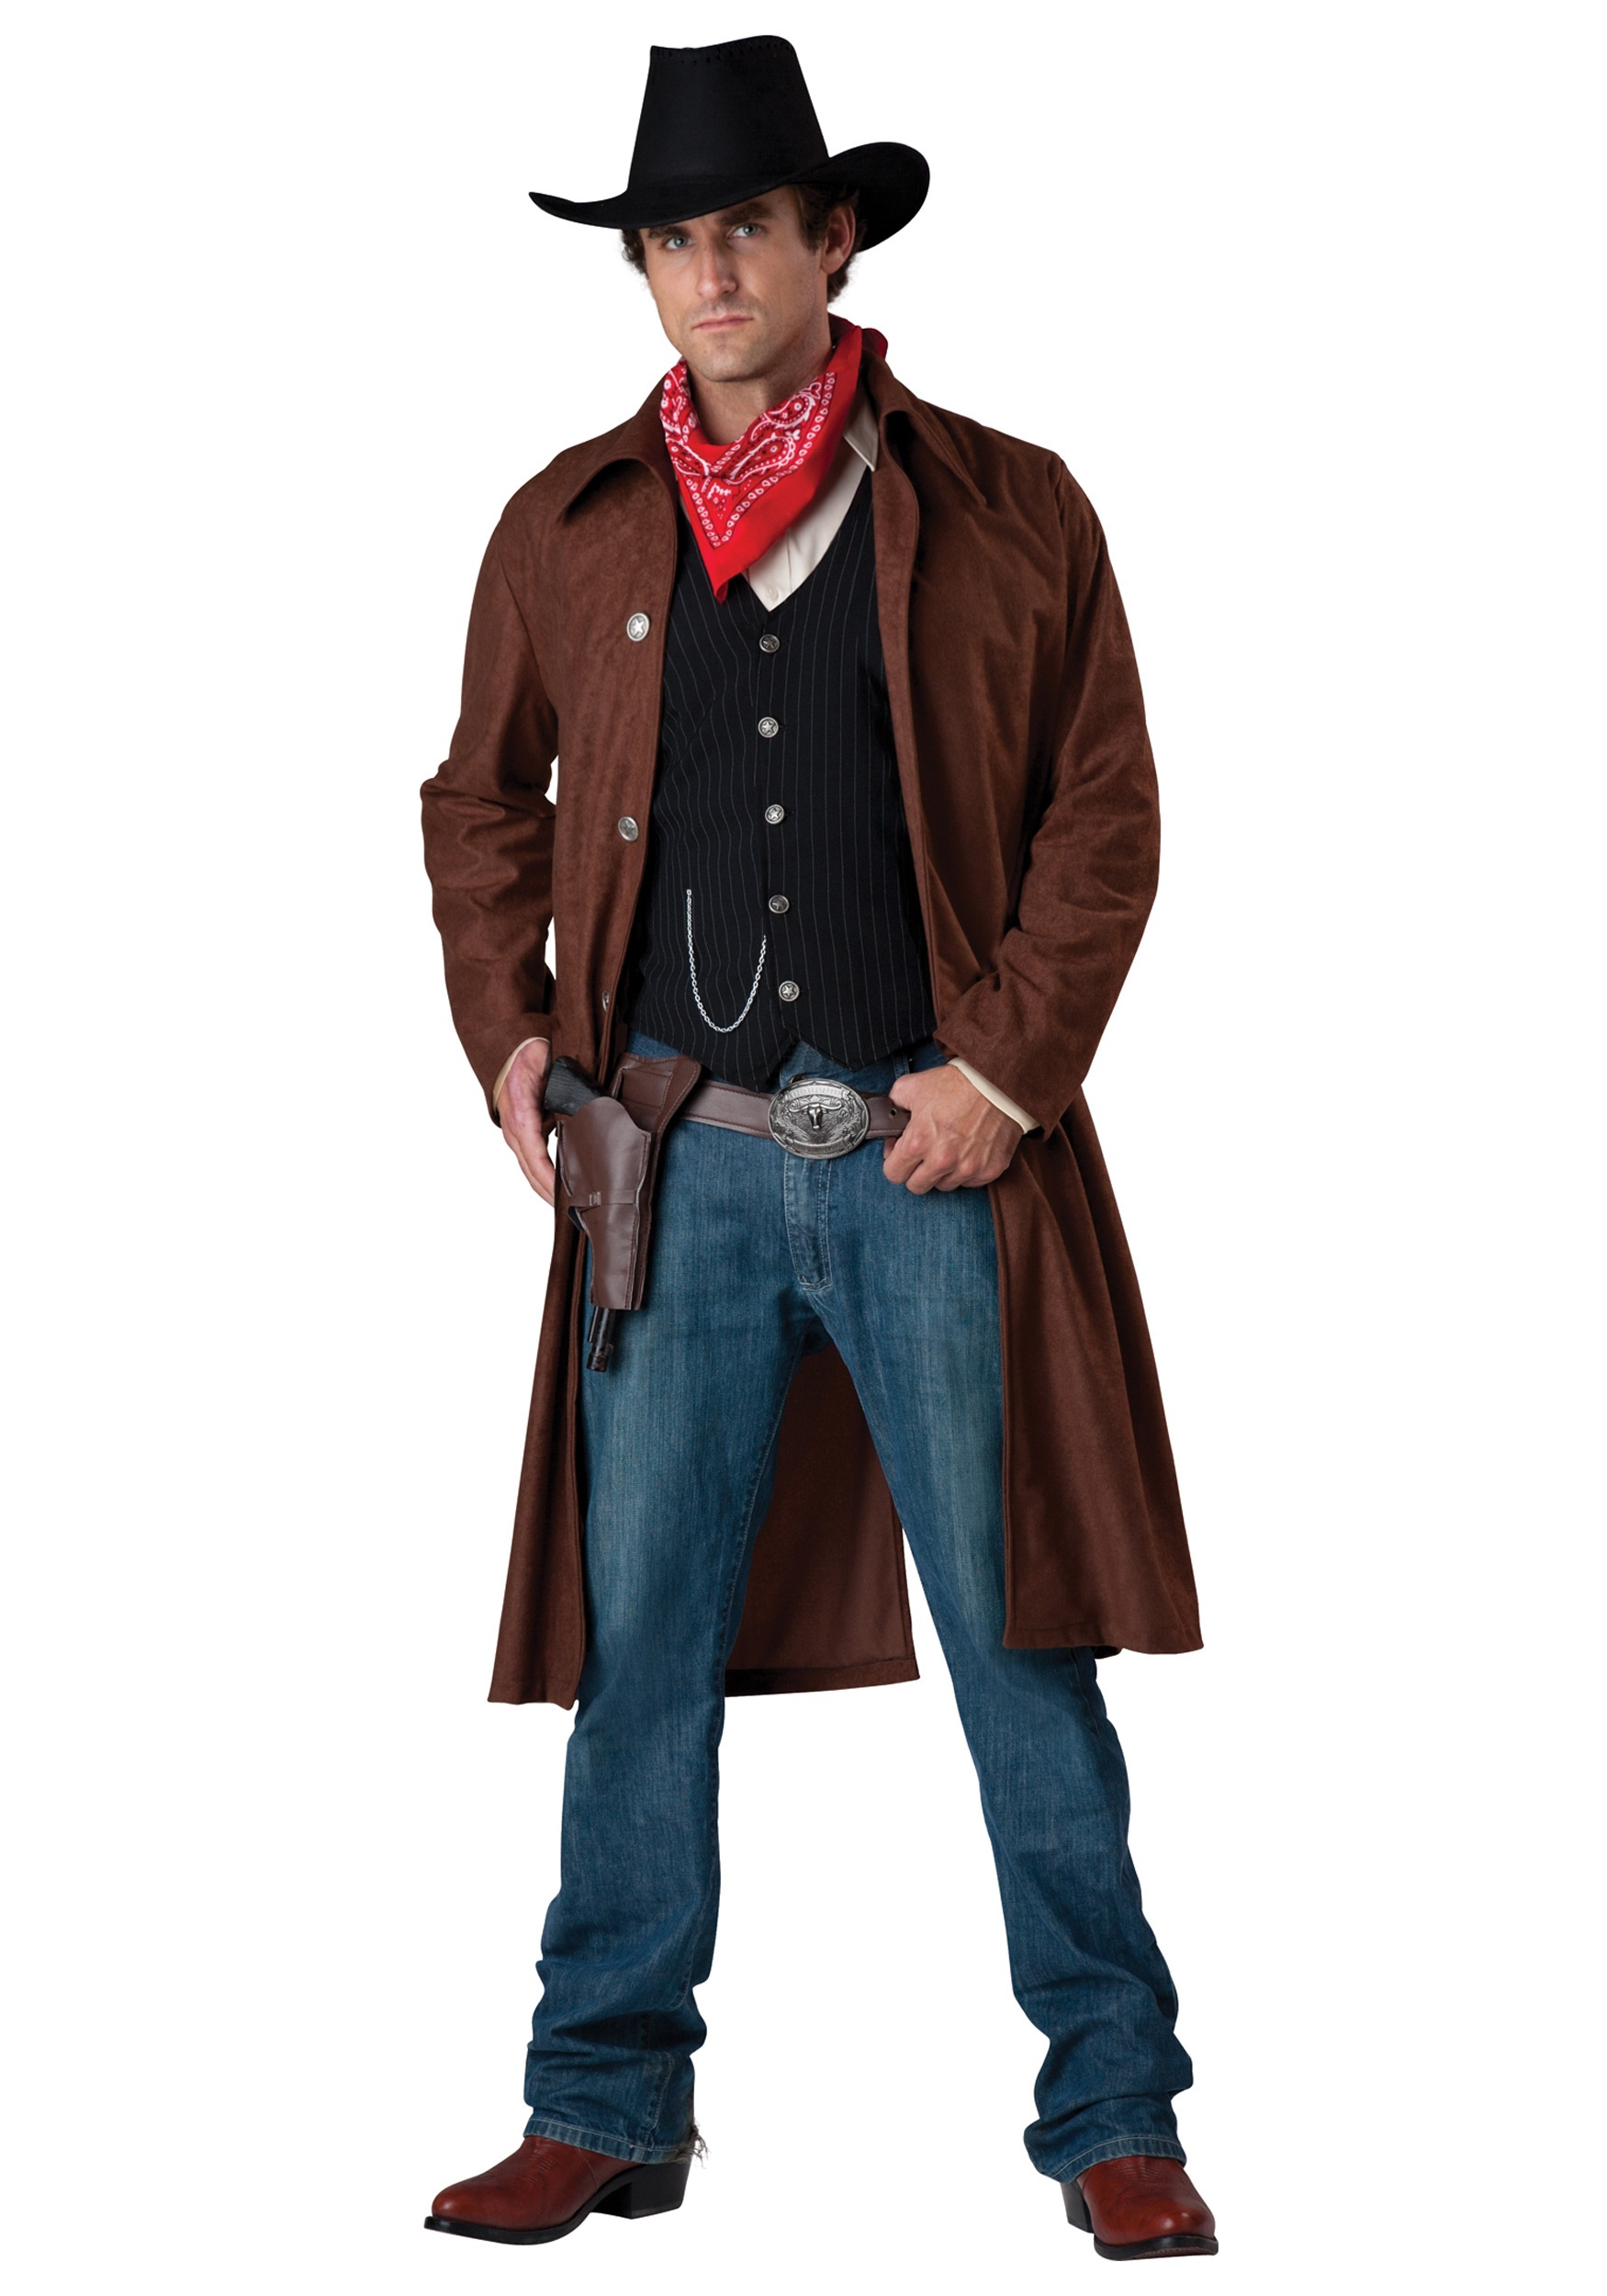 Gritty Gunslinger Costume